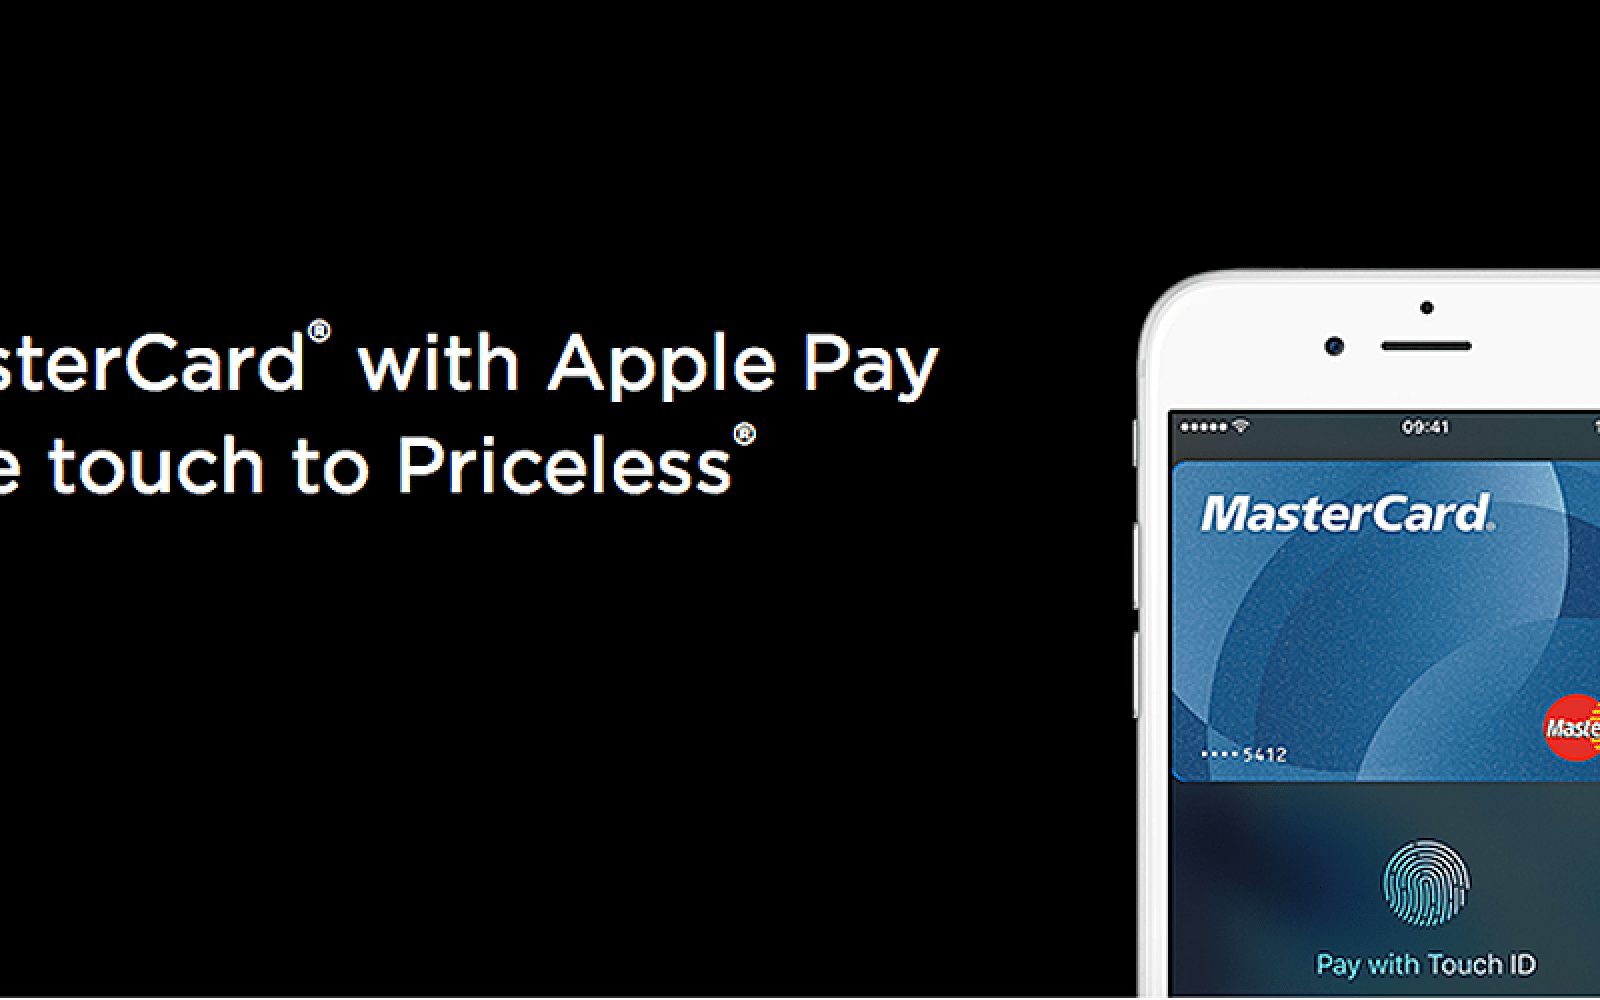 MasterCard's 'travel free in London with Apple Pay' promo is back for the next three Mondays